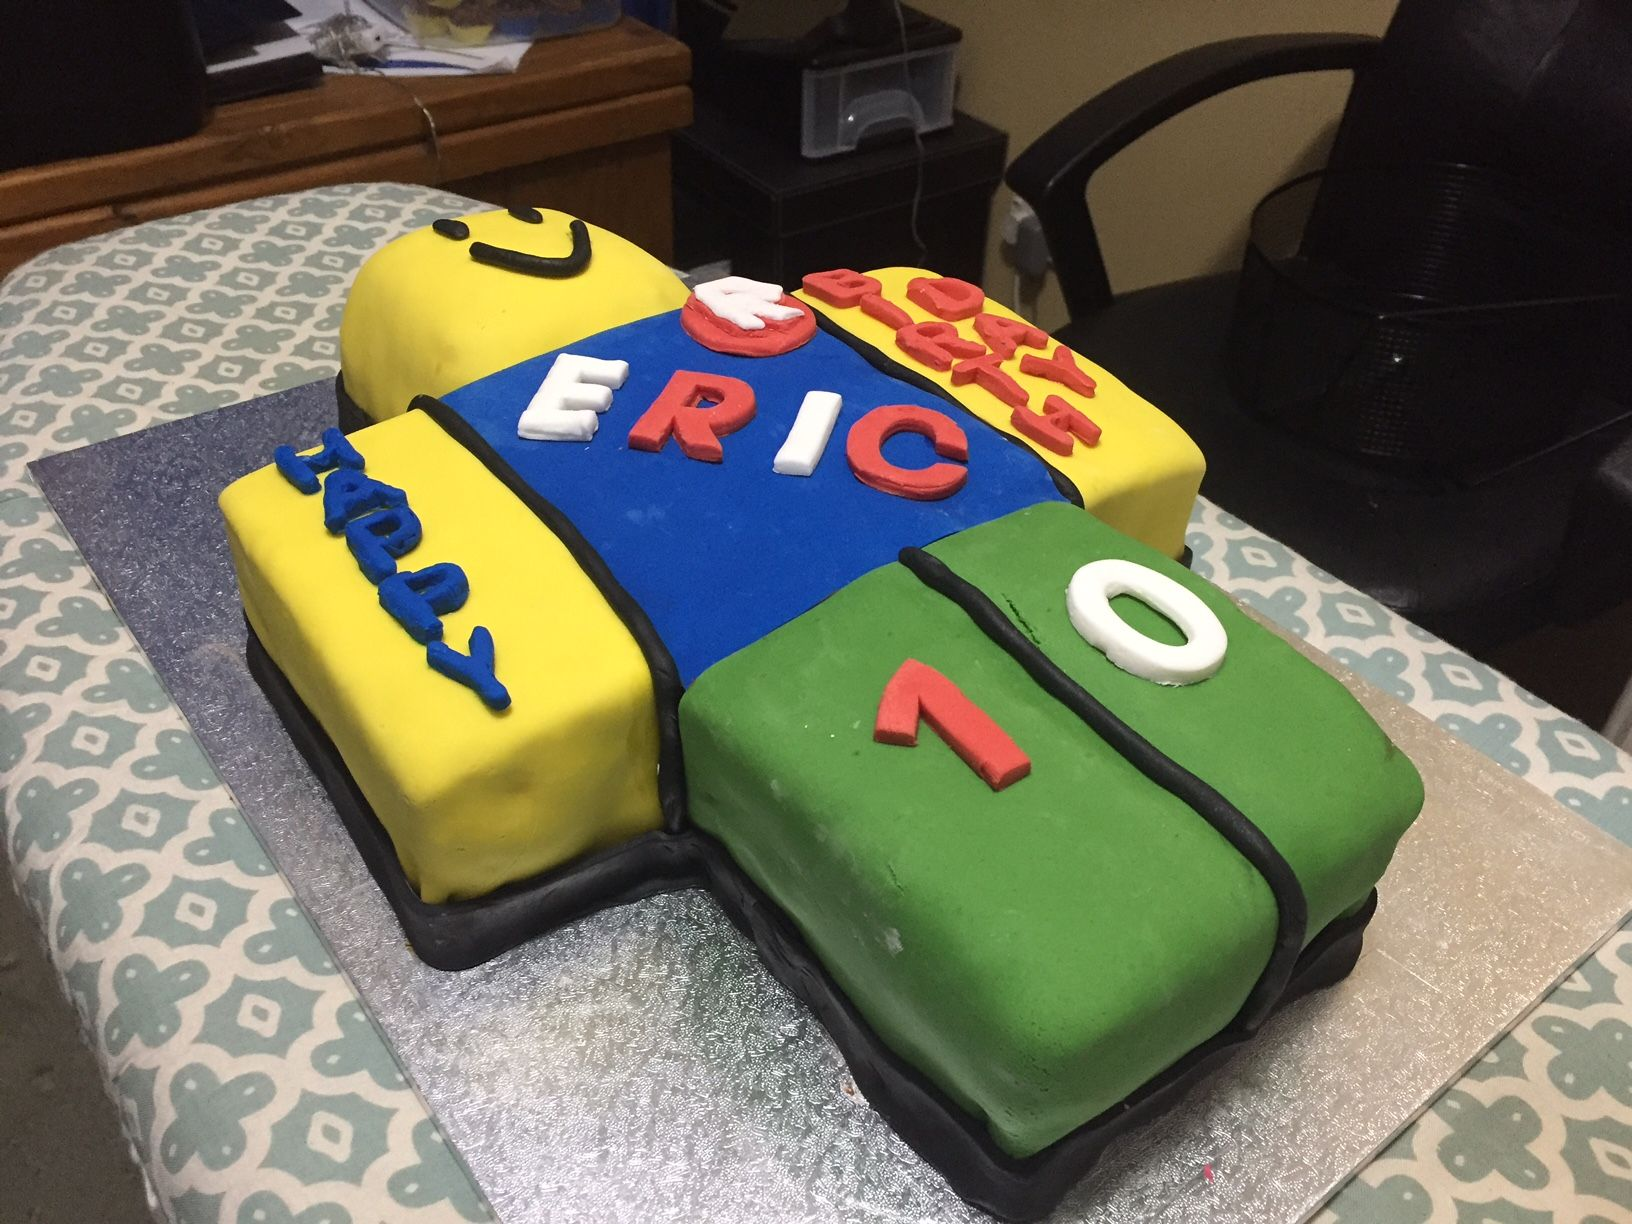 roblox birthday cake My sons Roblox noob cake | Roblox Birthday in 2019 | Roblox cake  roblox birthday cake